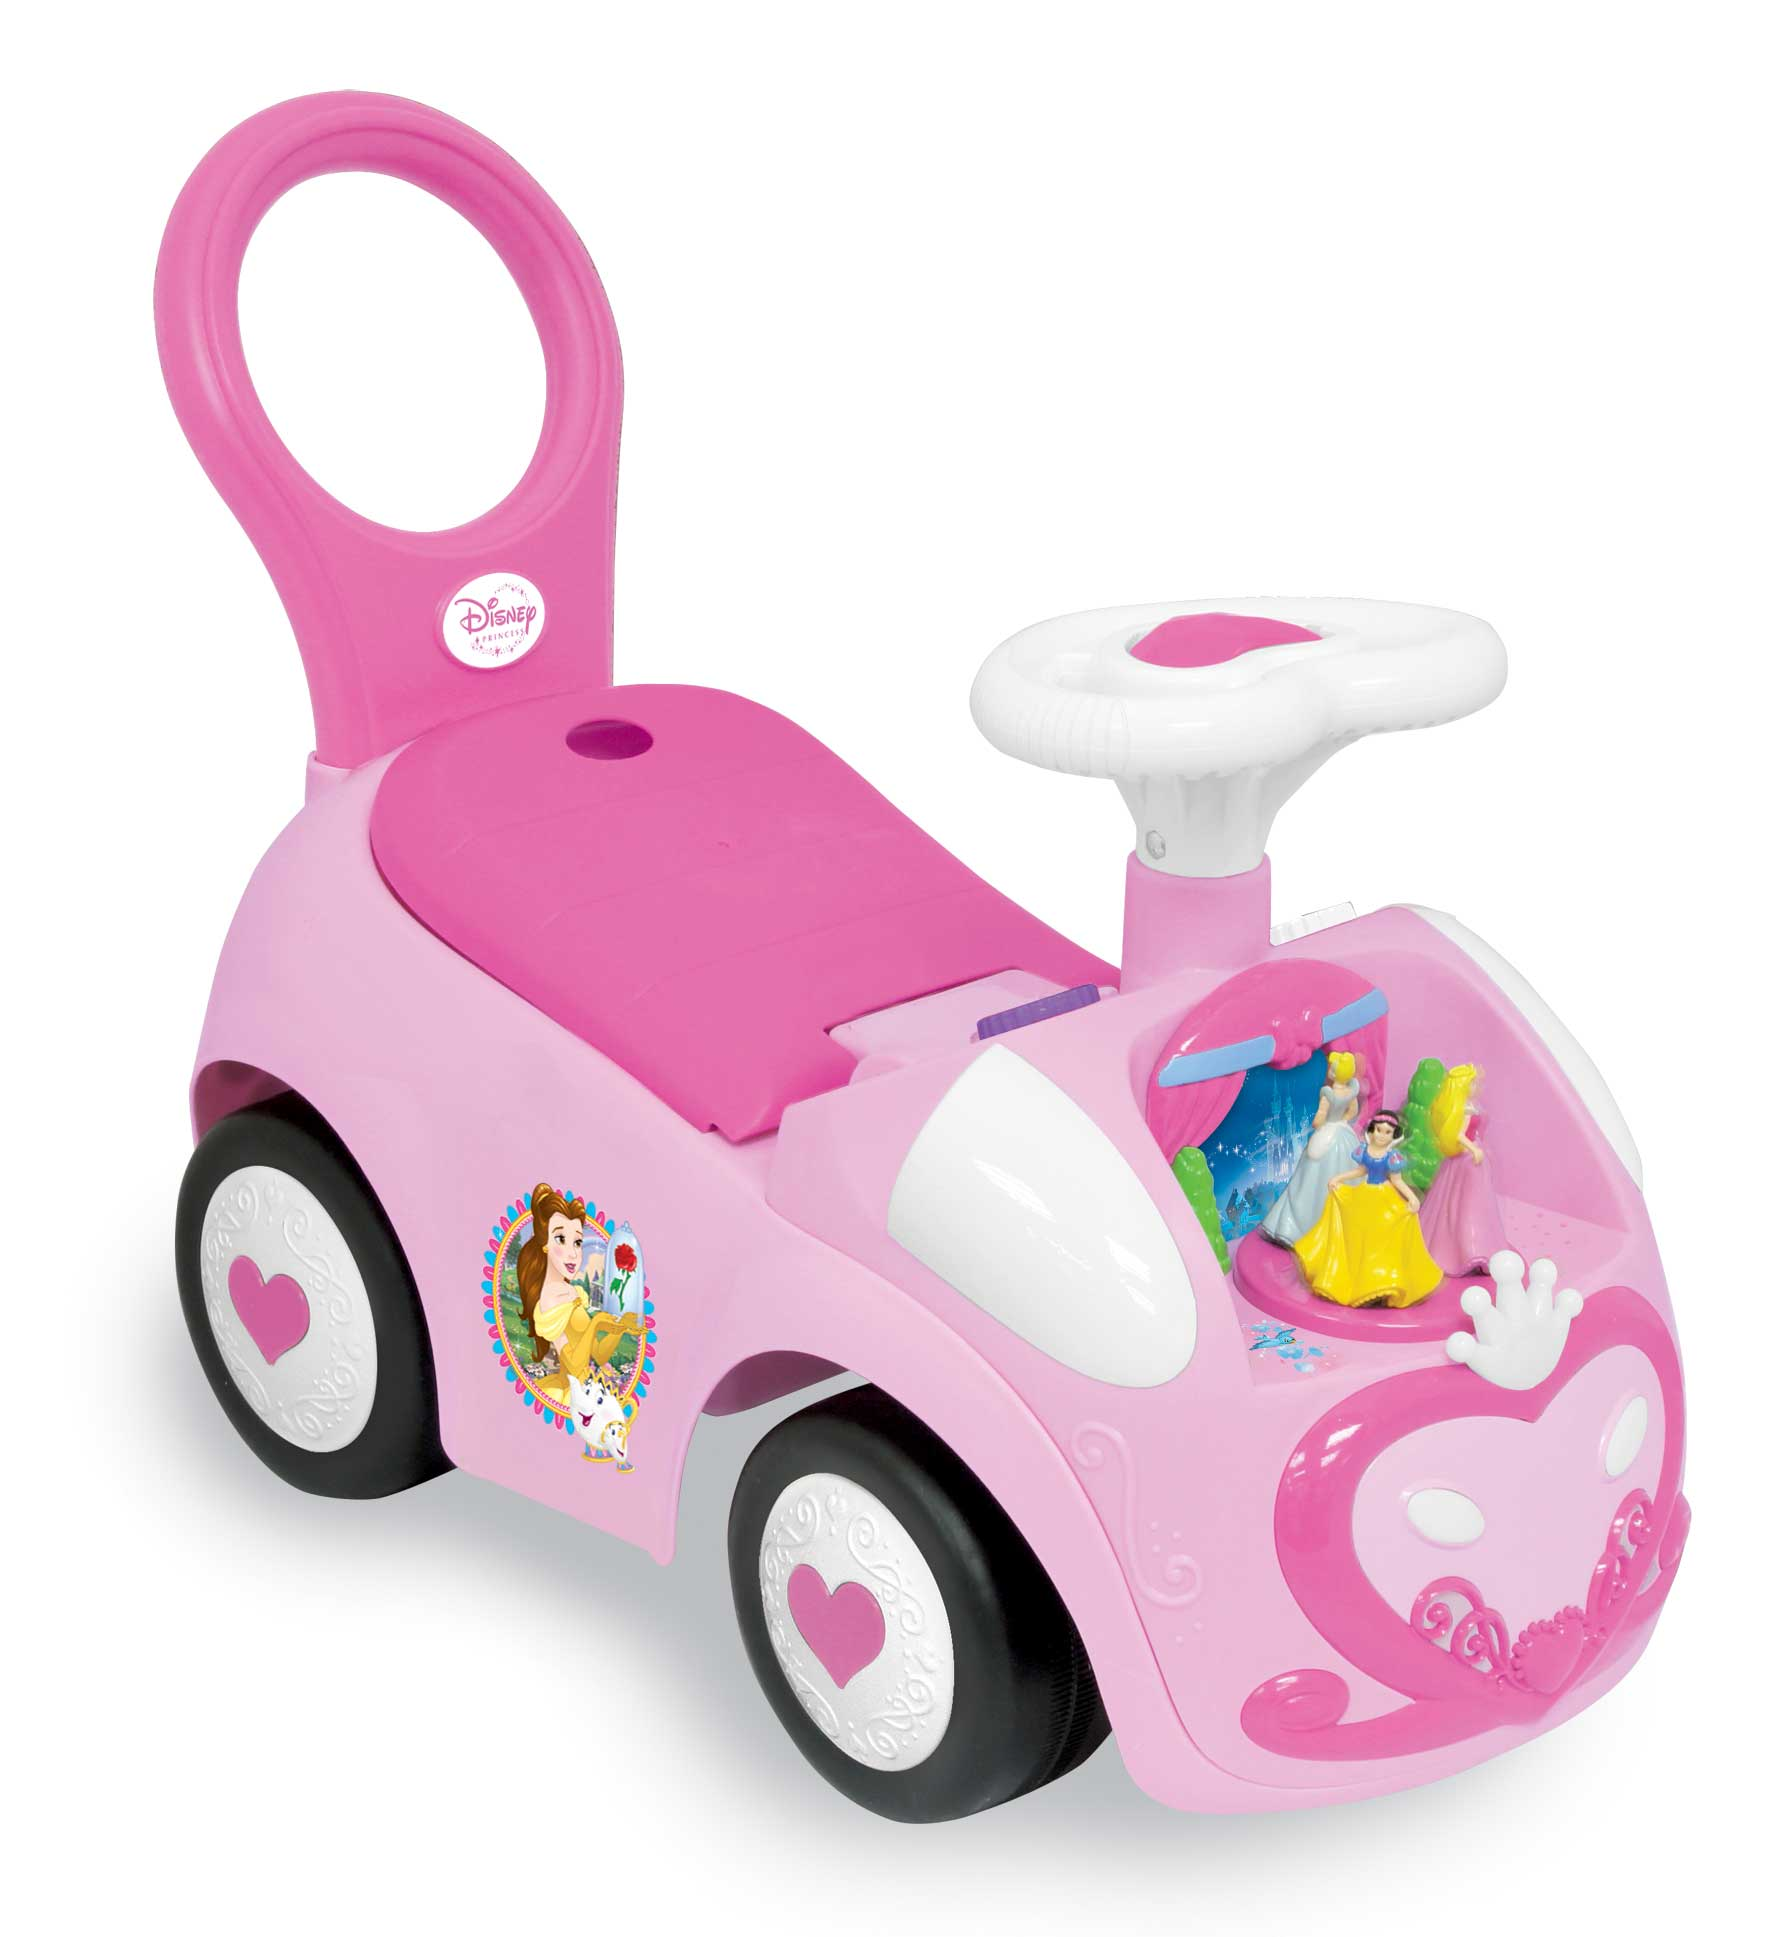 Disney Princess Dancing Lights N' Sounds Ride-On